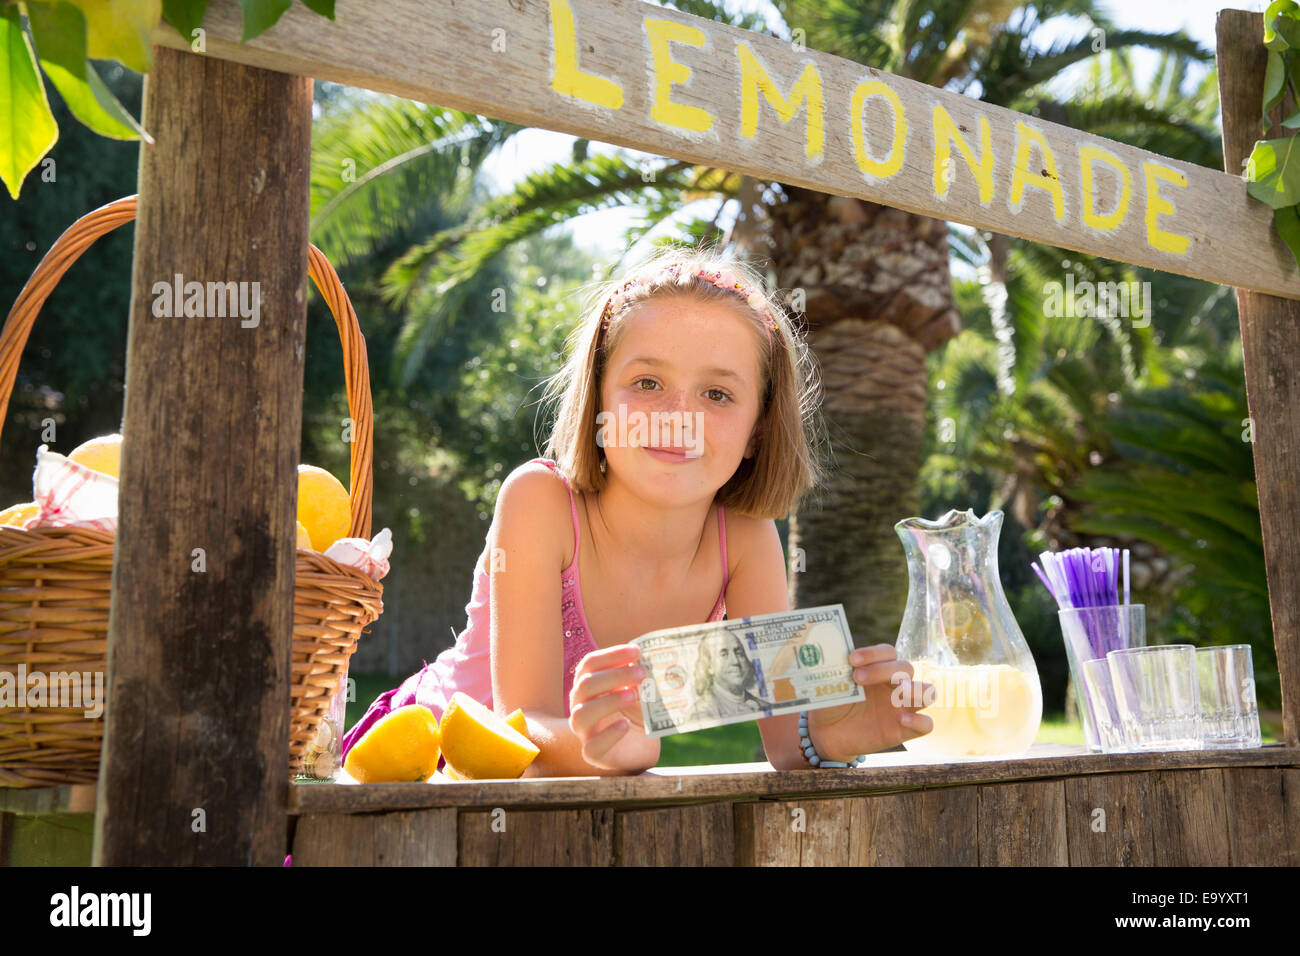 Portrait de jeune fille sur lemonade stand holding up one hundred dollar bill Photo Stock